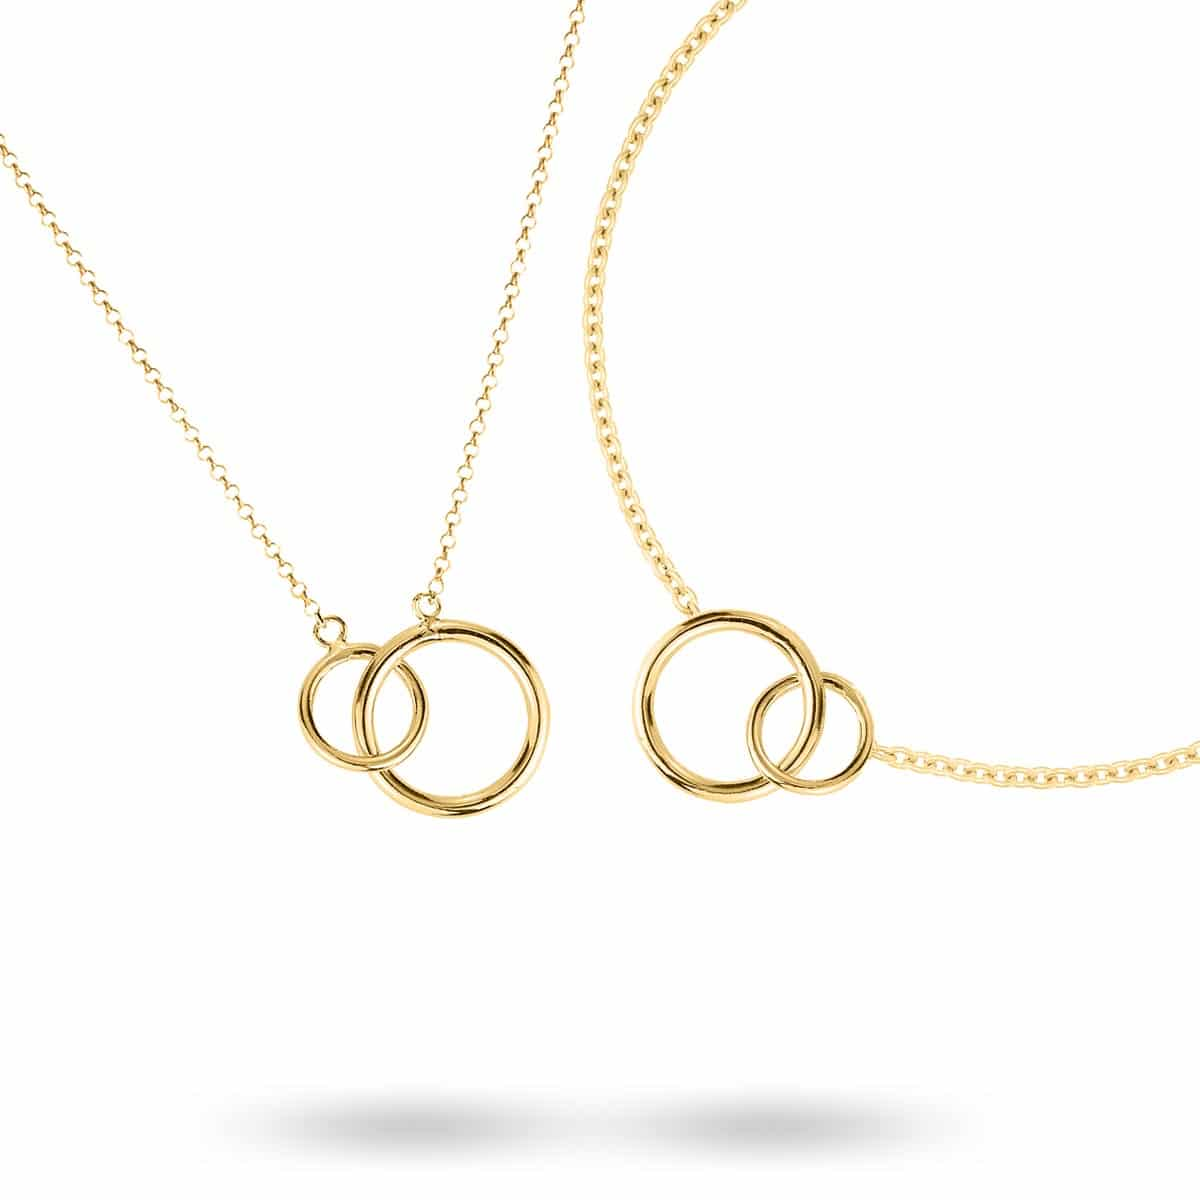 sophiebysophie-mini-circle-set-guld-1